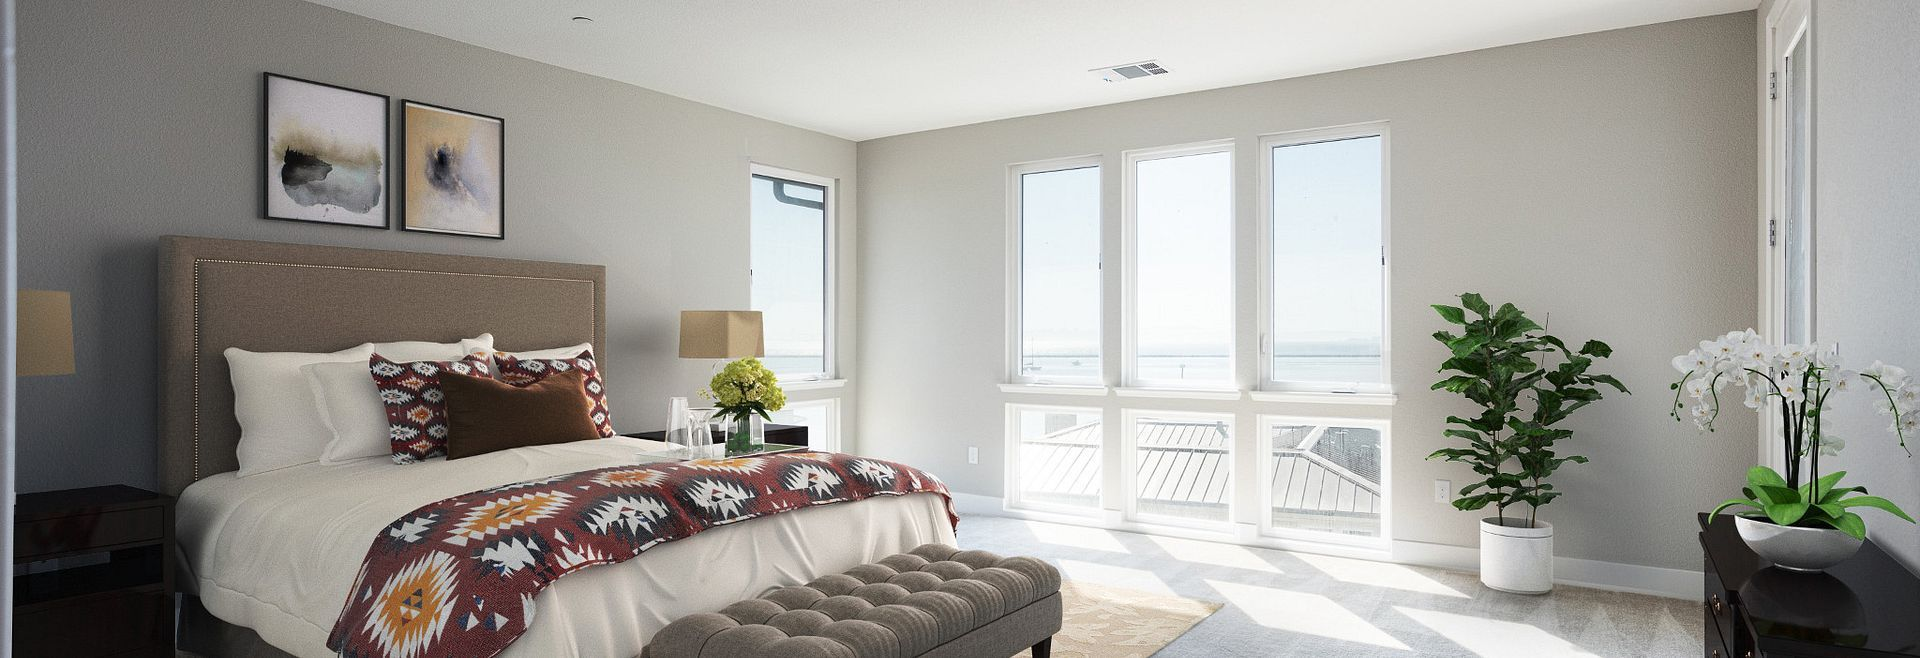 Bedroom featured in the Plan 4E By Shea Homes in Oakland-Alameda, CA